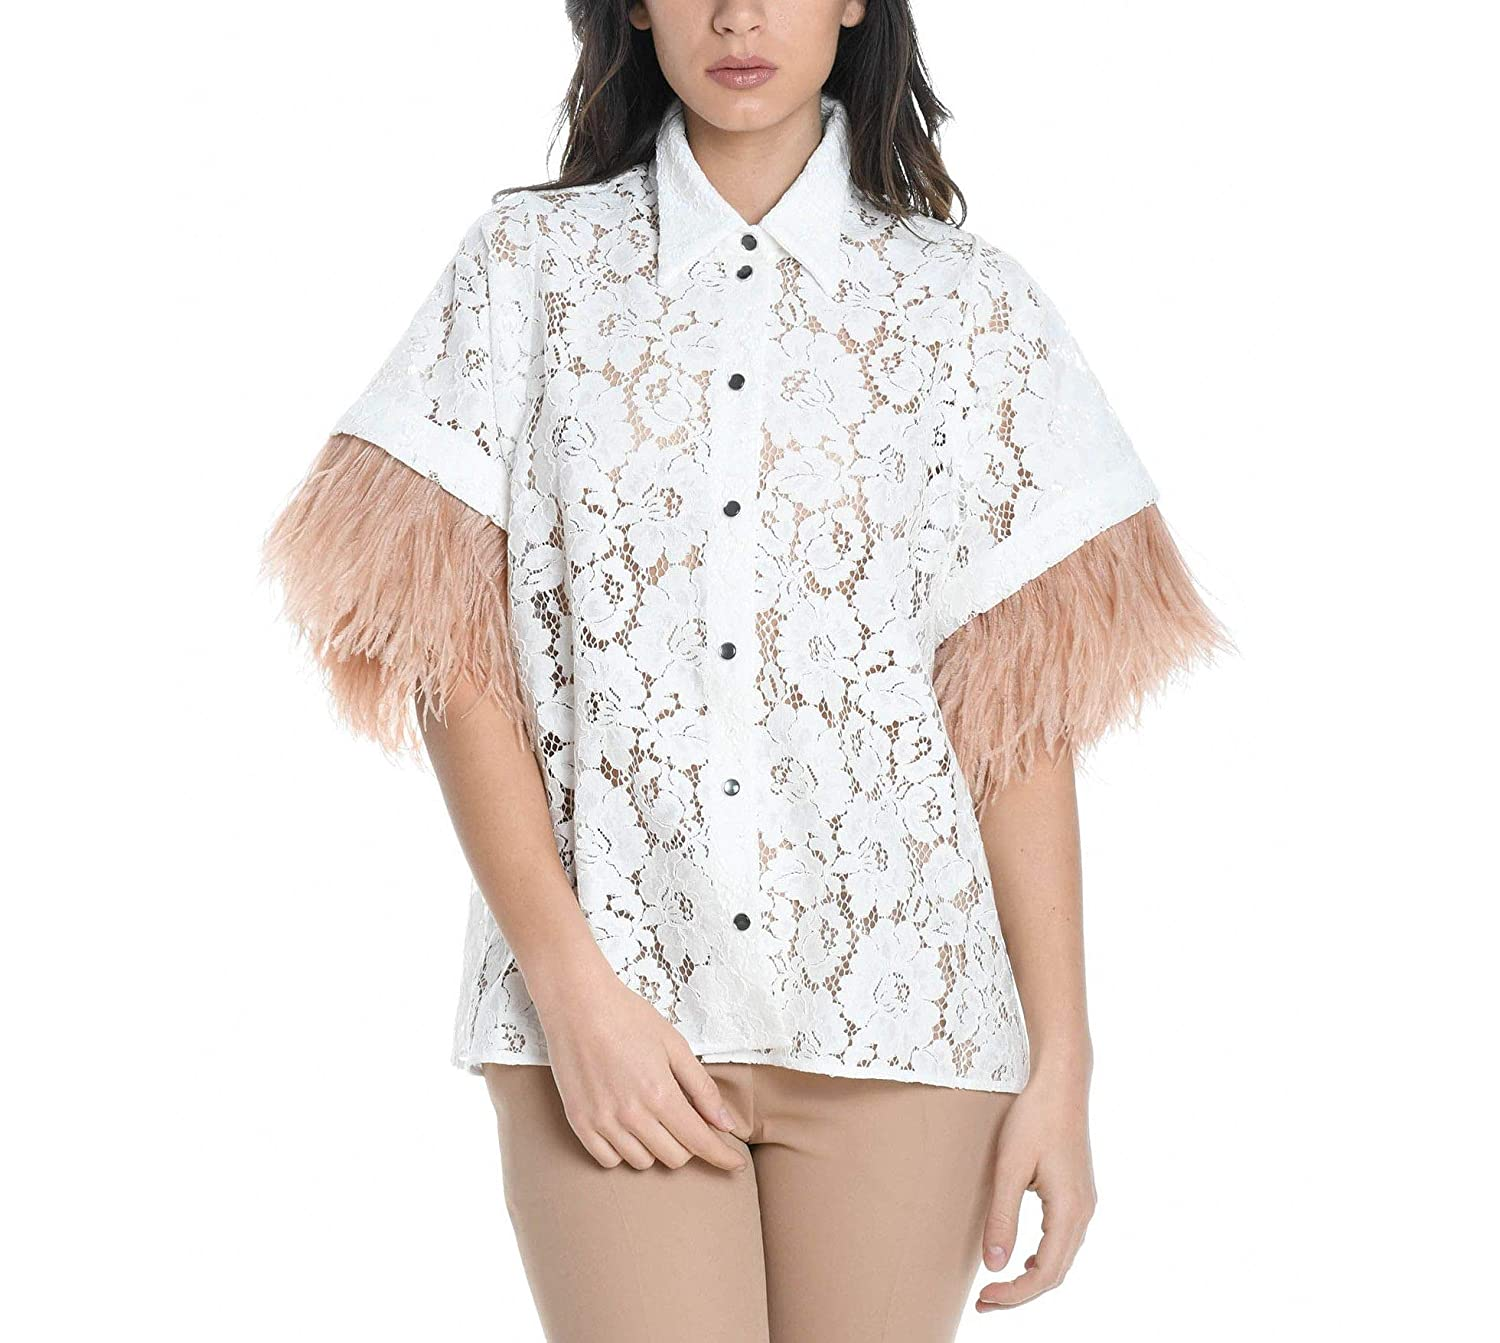 N°21 Women's G11249211102 White Cotton Shirt